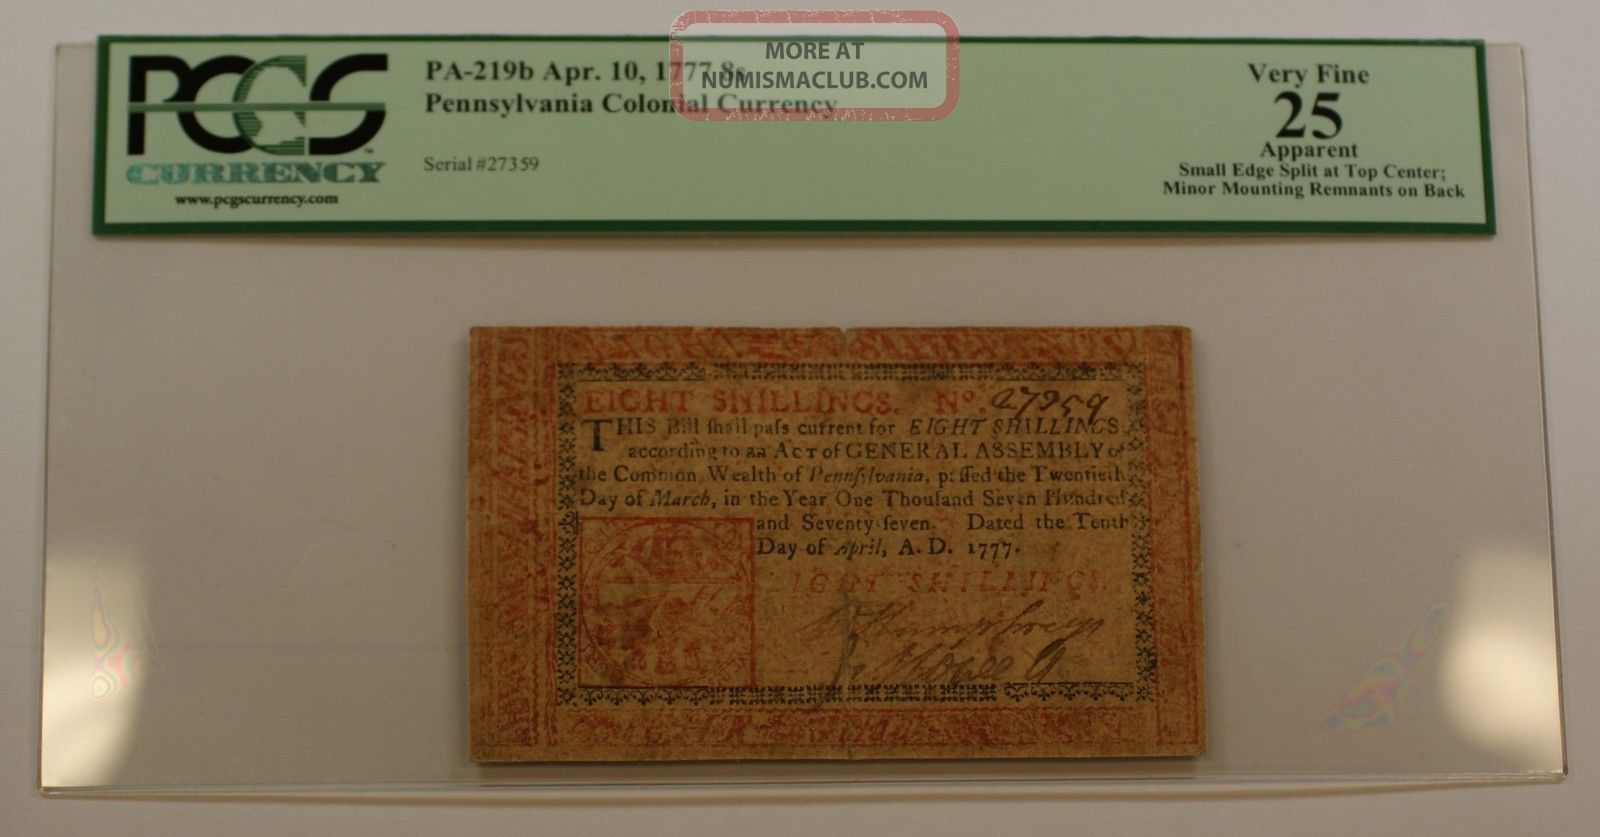 Apr.  10 1777 8s Pennsylvania Colonial Currency Note Pcgs Vf - 25 Apparent Pa - 219b Paper Money: US photo